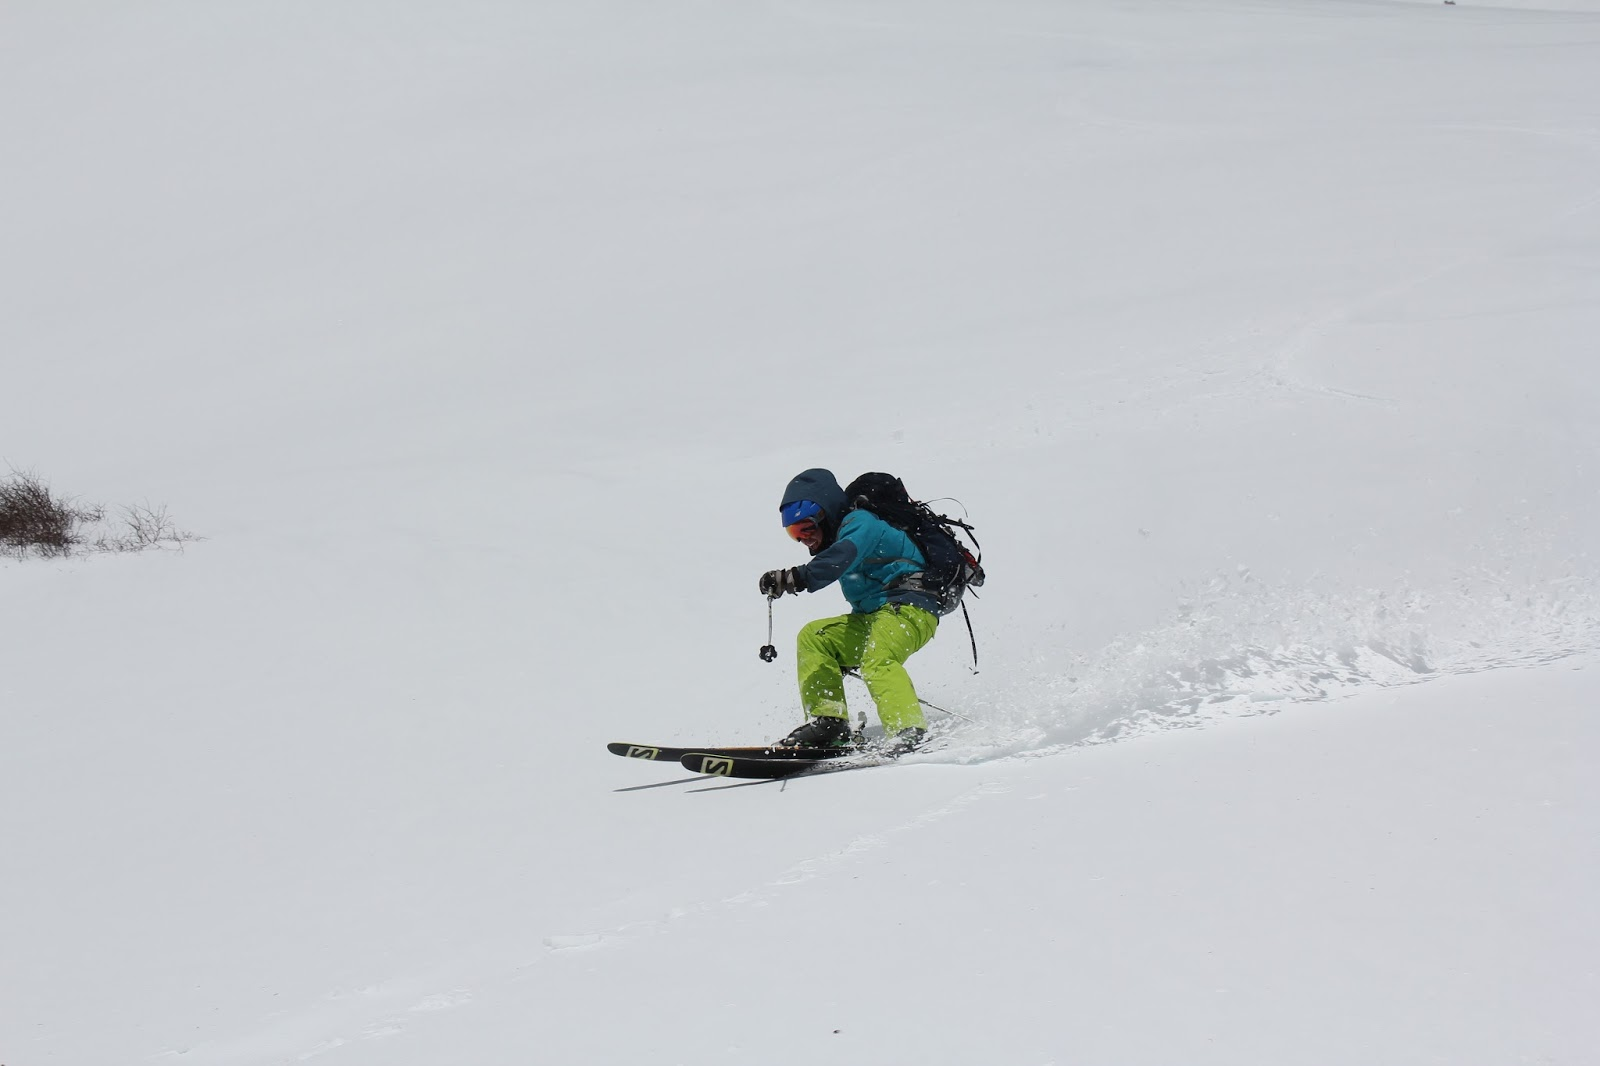 Exercises To Get In Shape For Ski/Snowboard Season